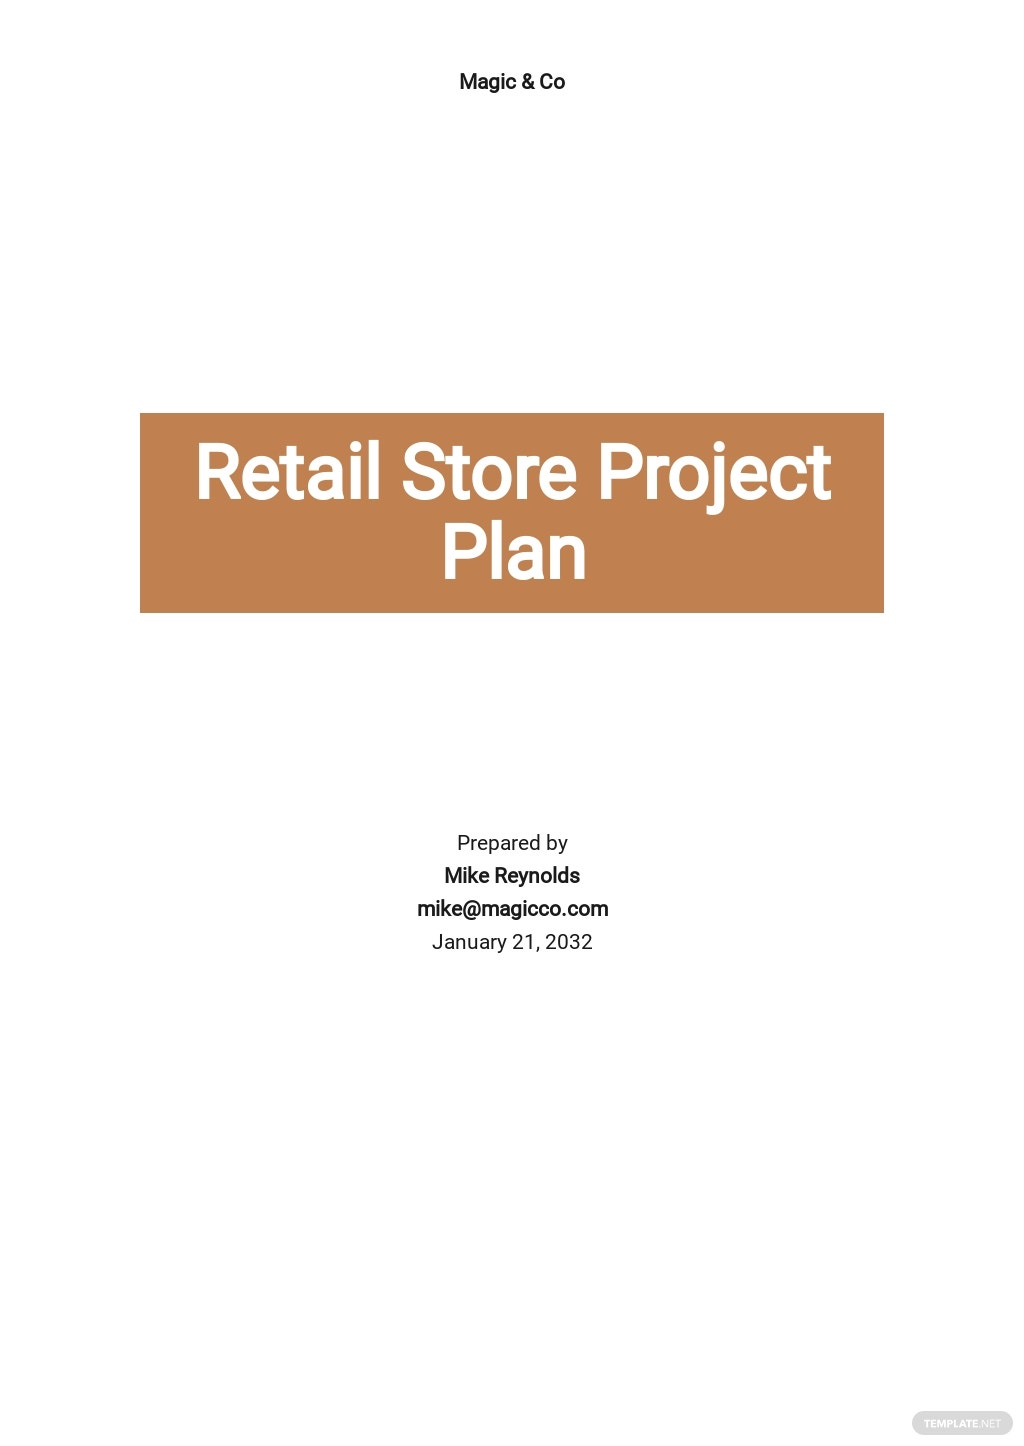 Retail Store Project Plan Template